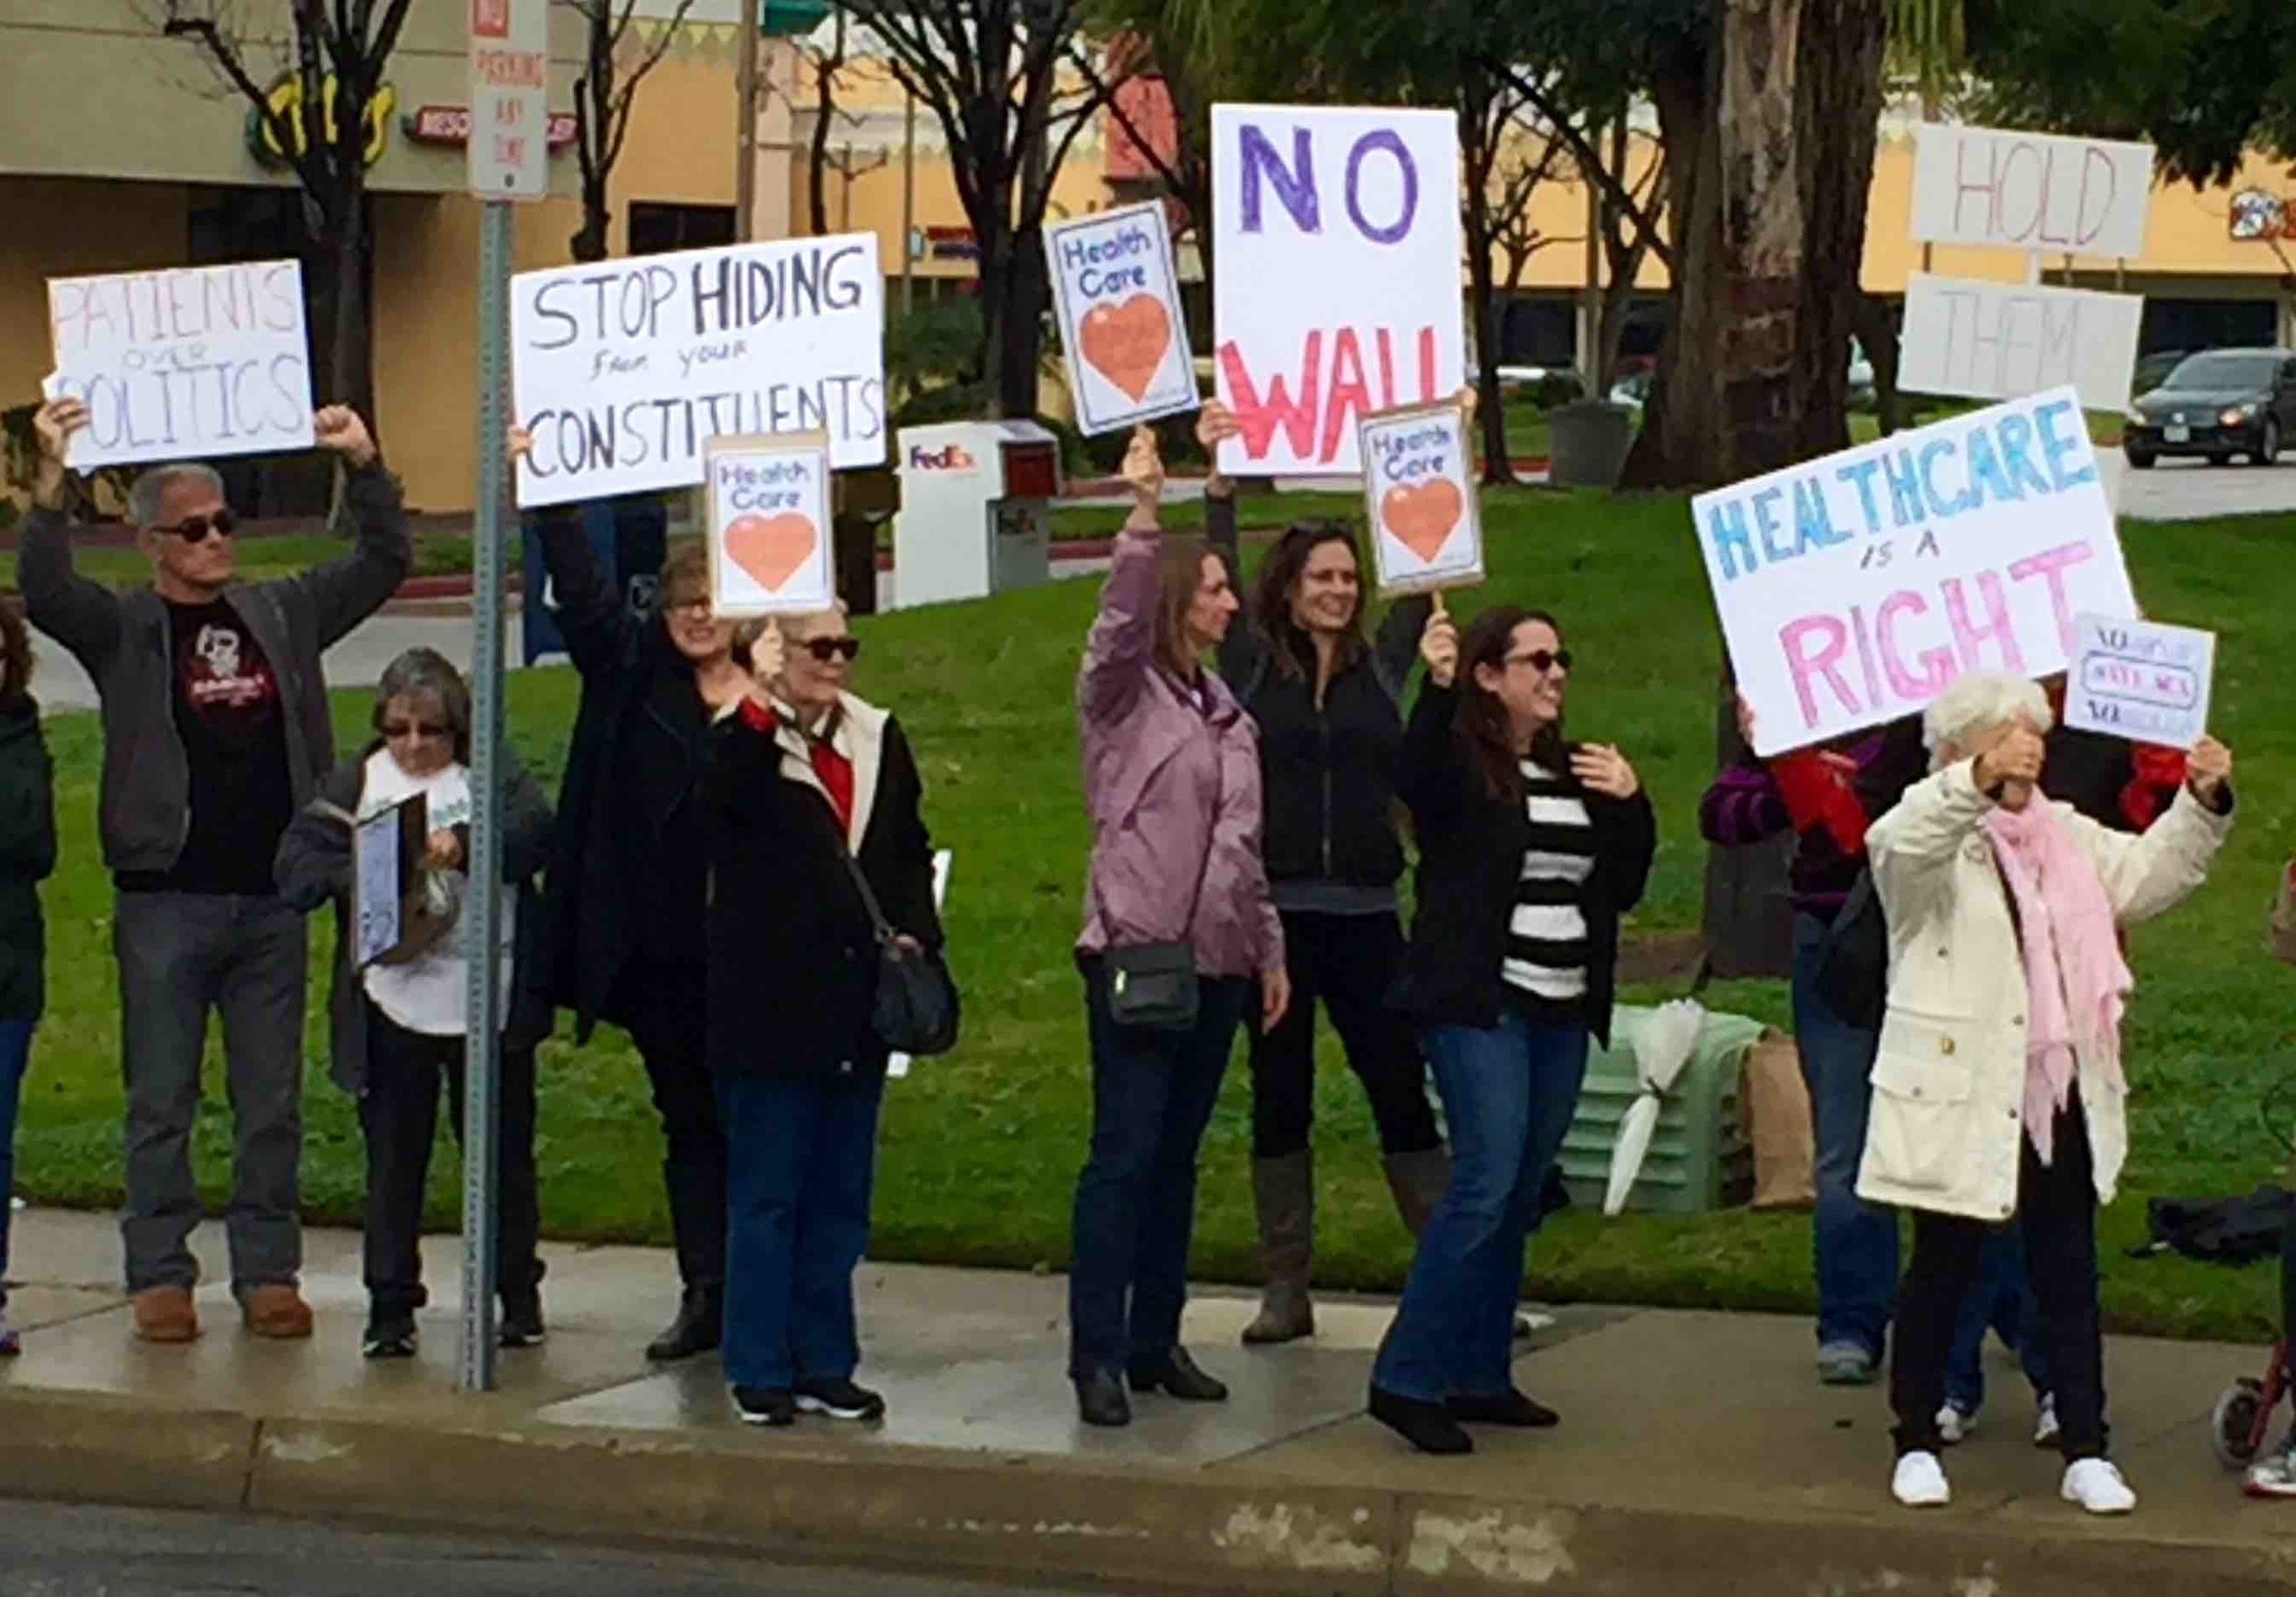 Protesting in Simi Valley